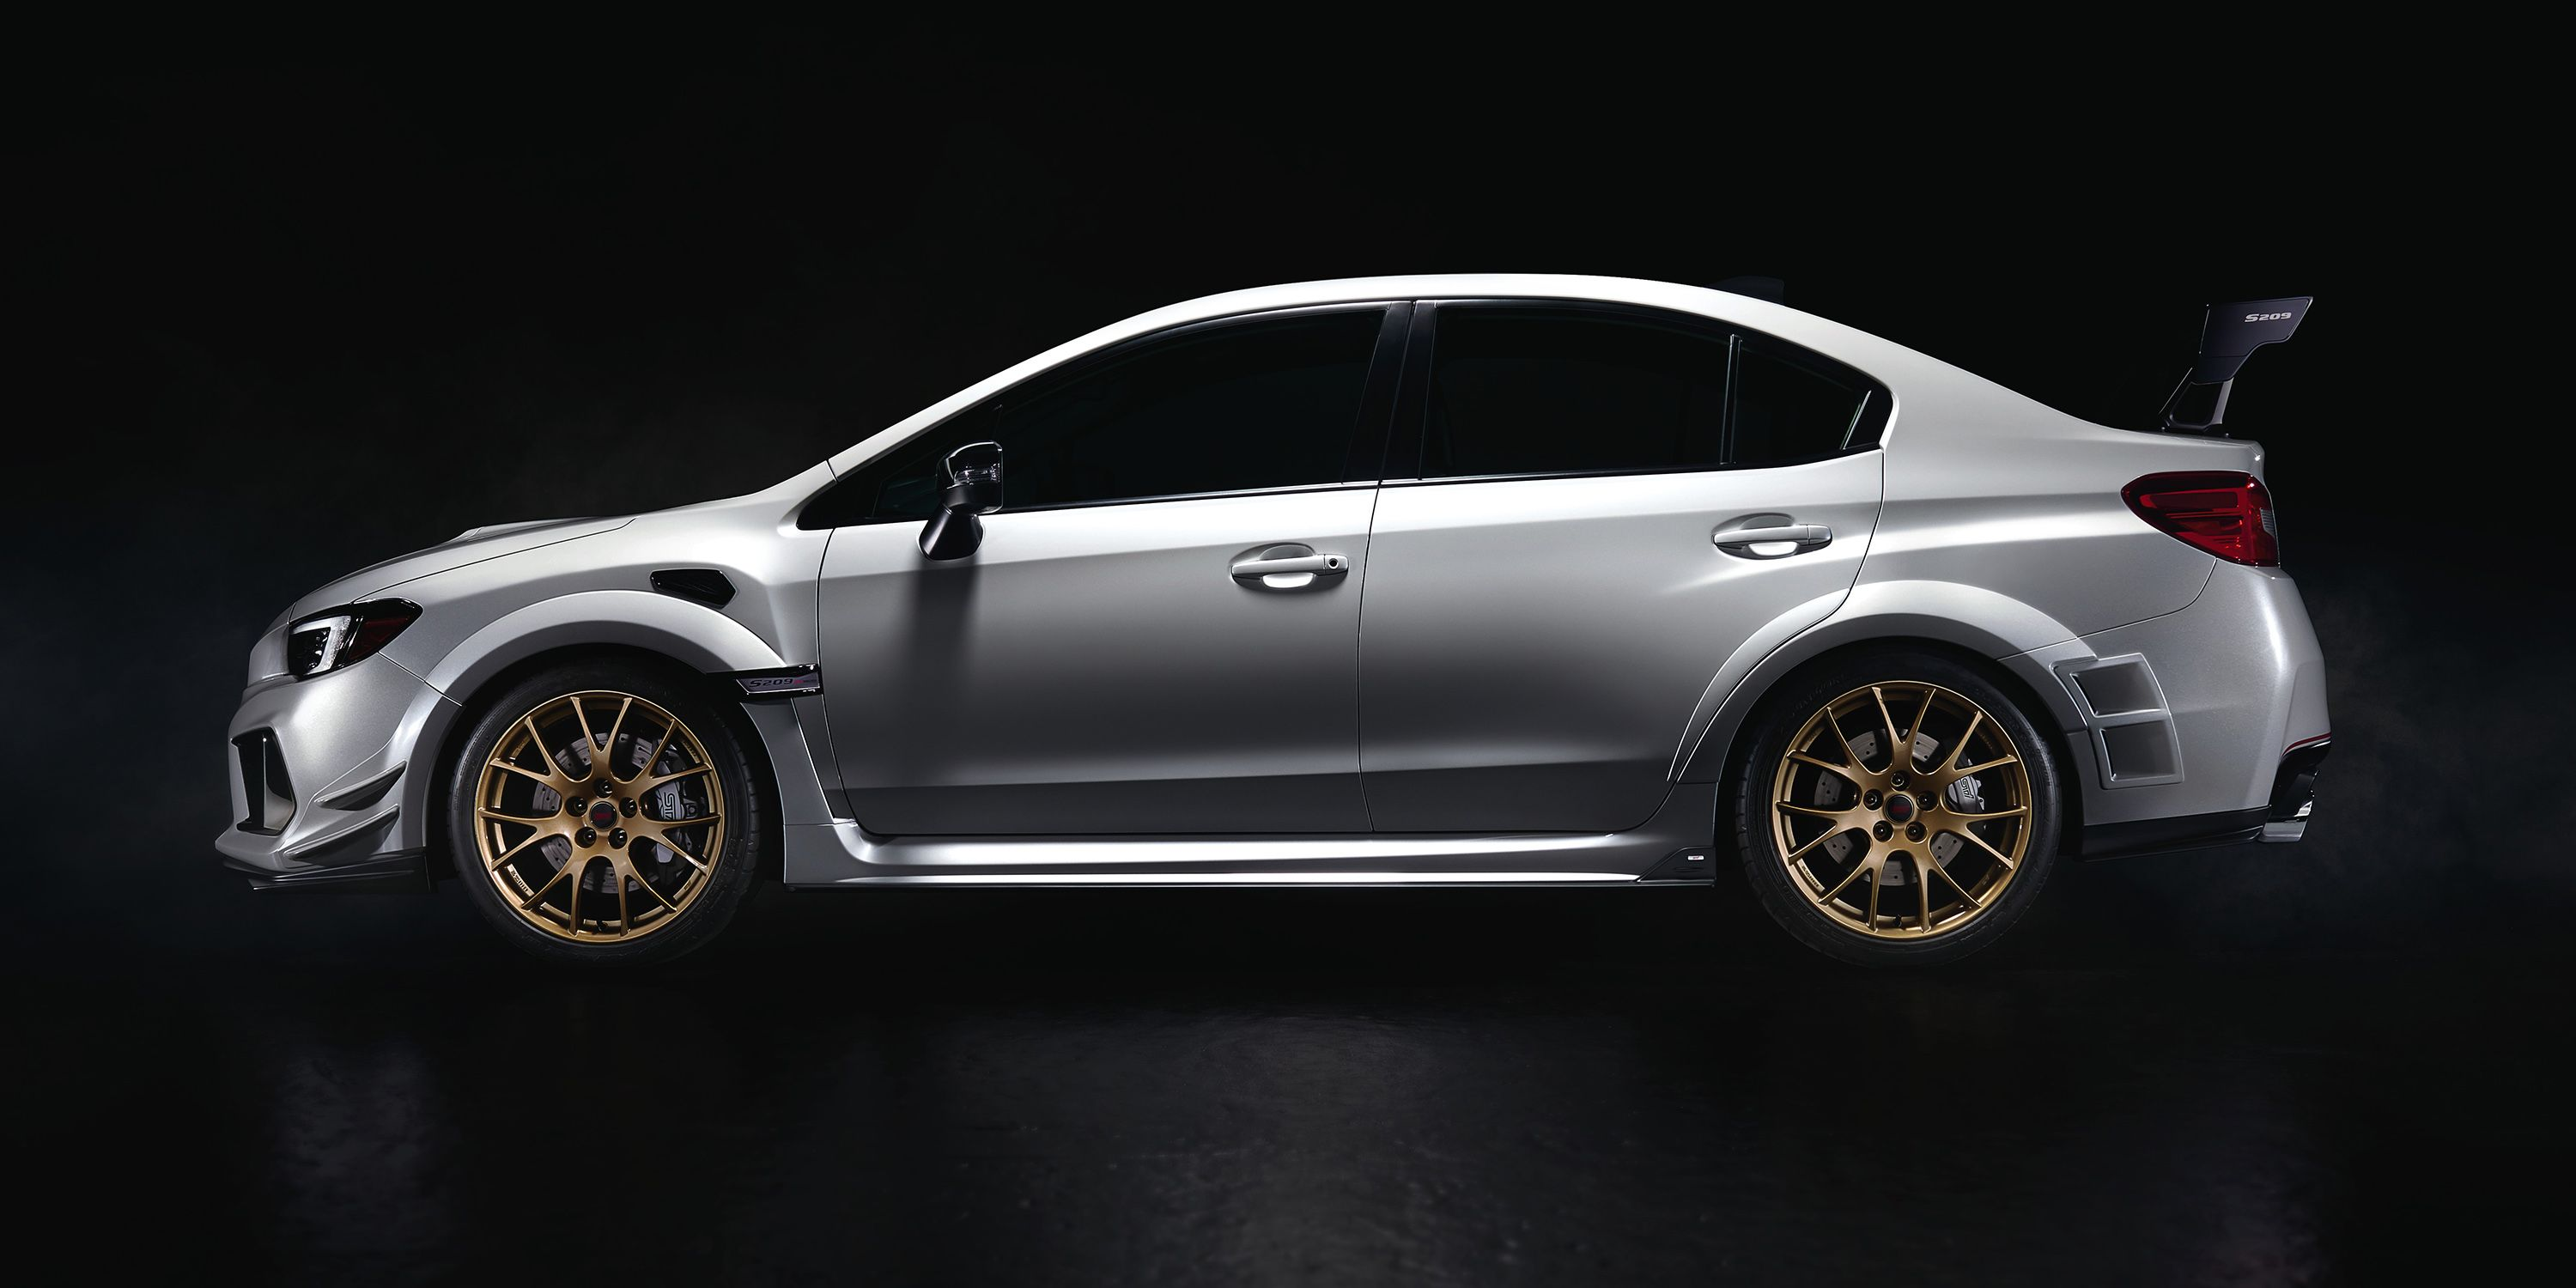 2021 Subaru Legacy Release Date, Redesign, Specs, And Colors >> 2020 Subaru Wrx Sti S209 New Wrx Sti With More Power At Detroit